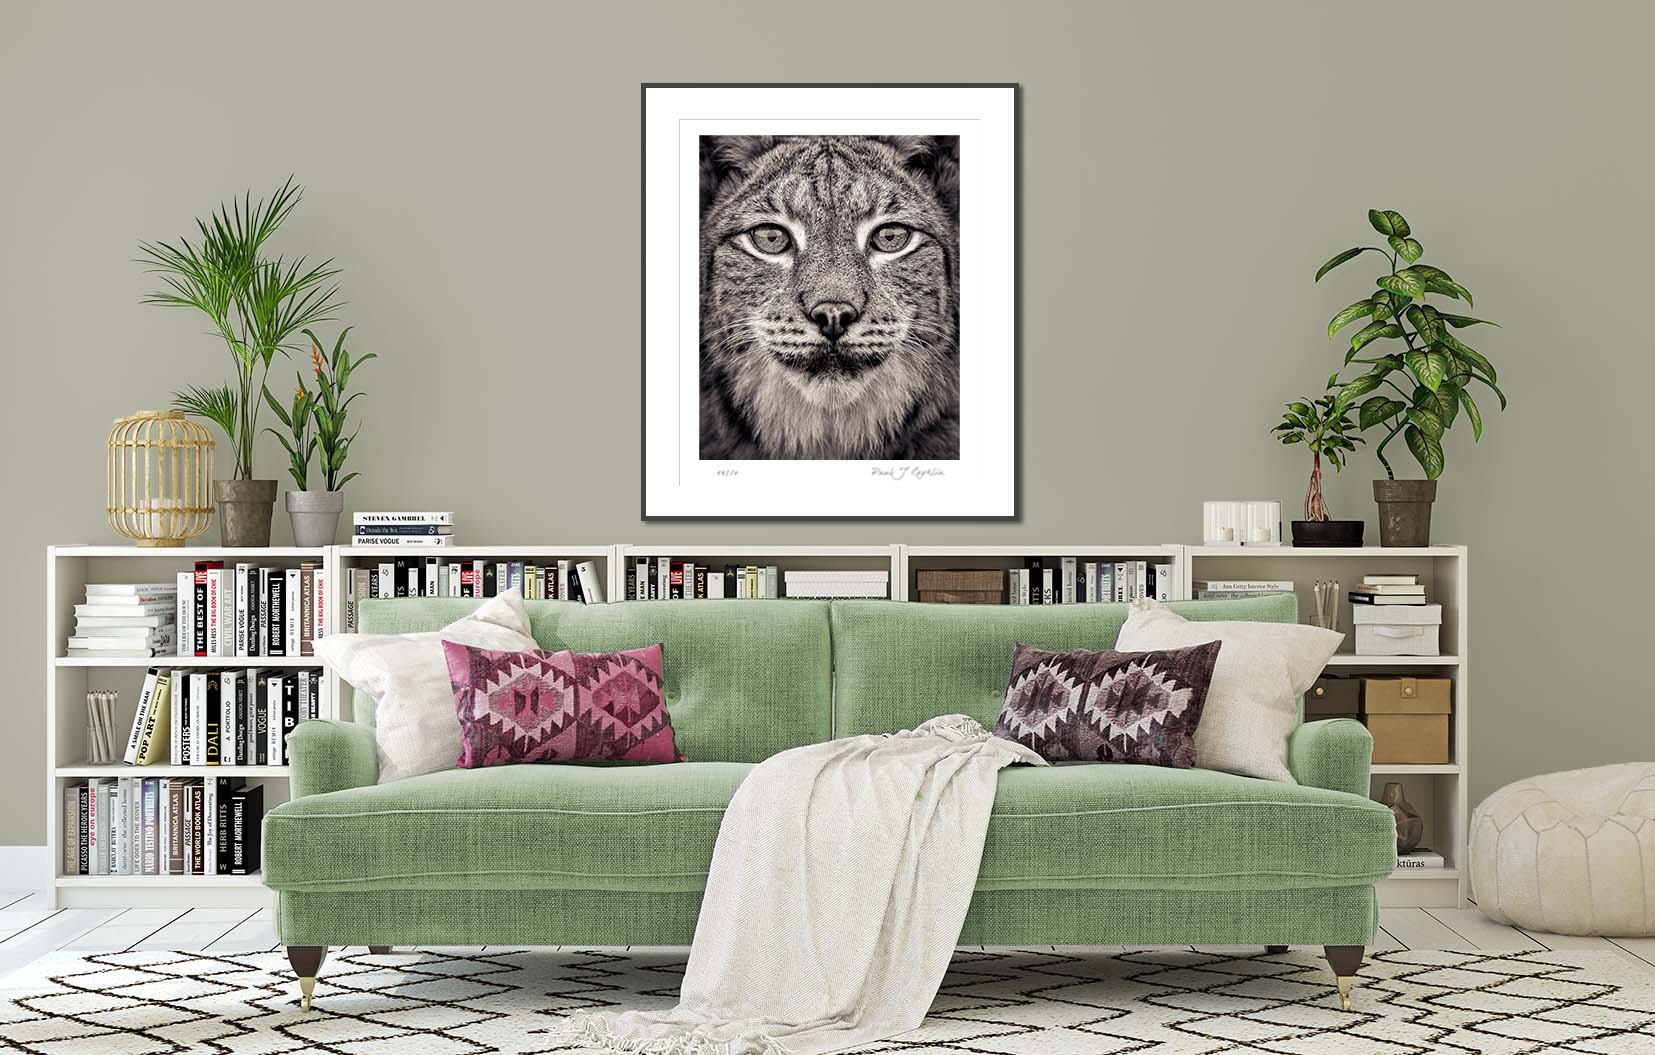 Portrait of a Eurasian Lynx from the Fading From View series. Big cat and animal prints by fine art photographer Paul Coghlin. Limited edition photographic prints